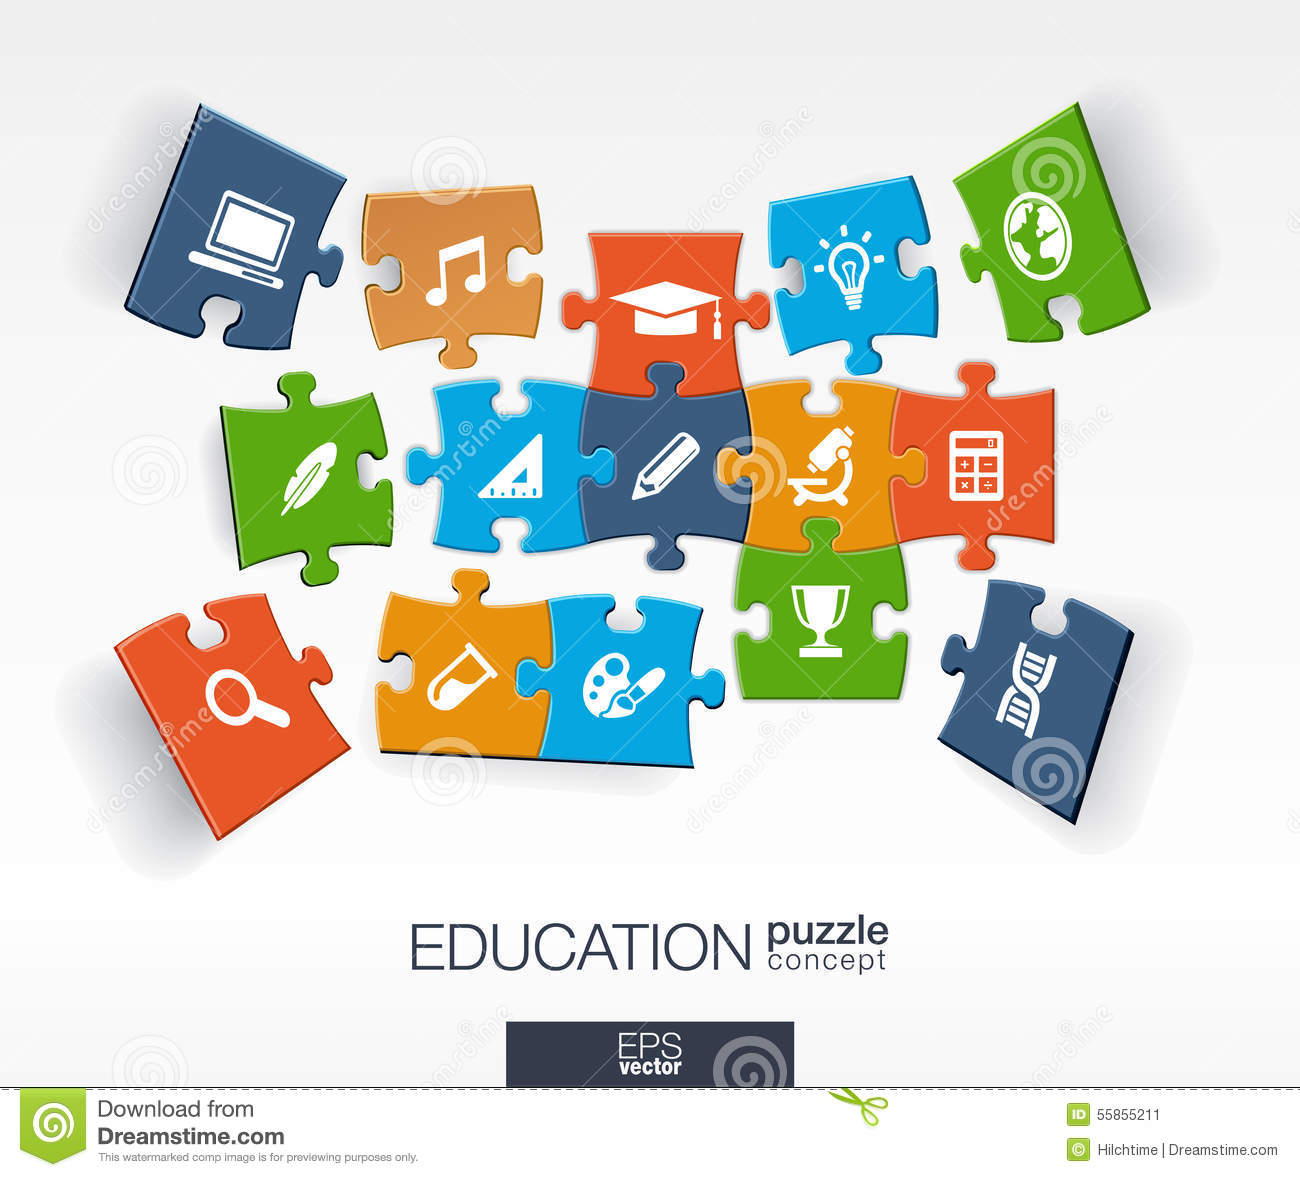 Abstract education background, connected color puzzles, integrated flat icons. 3d infographic concept with school, science